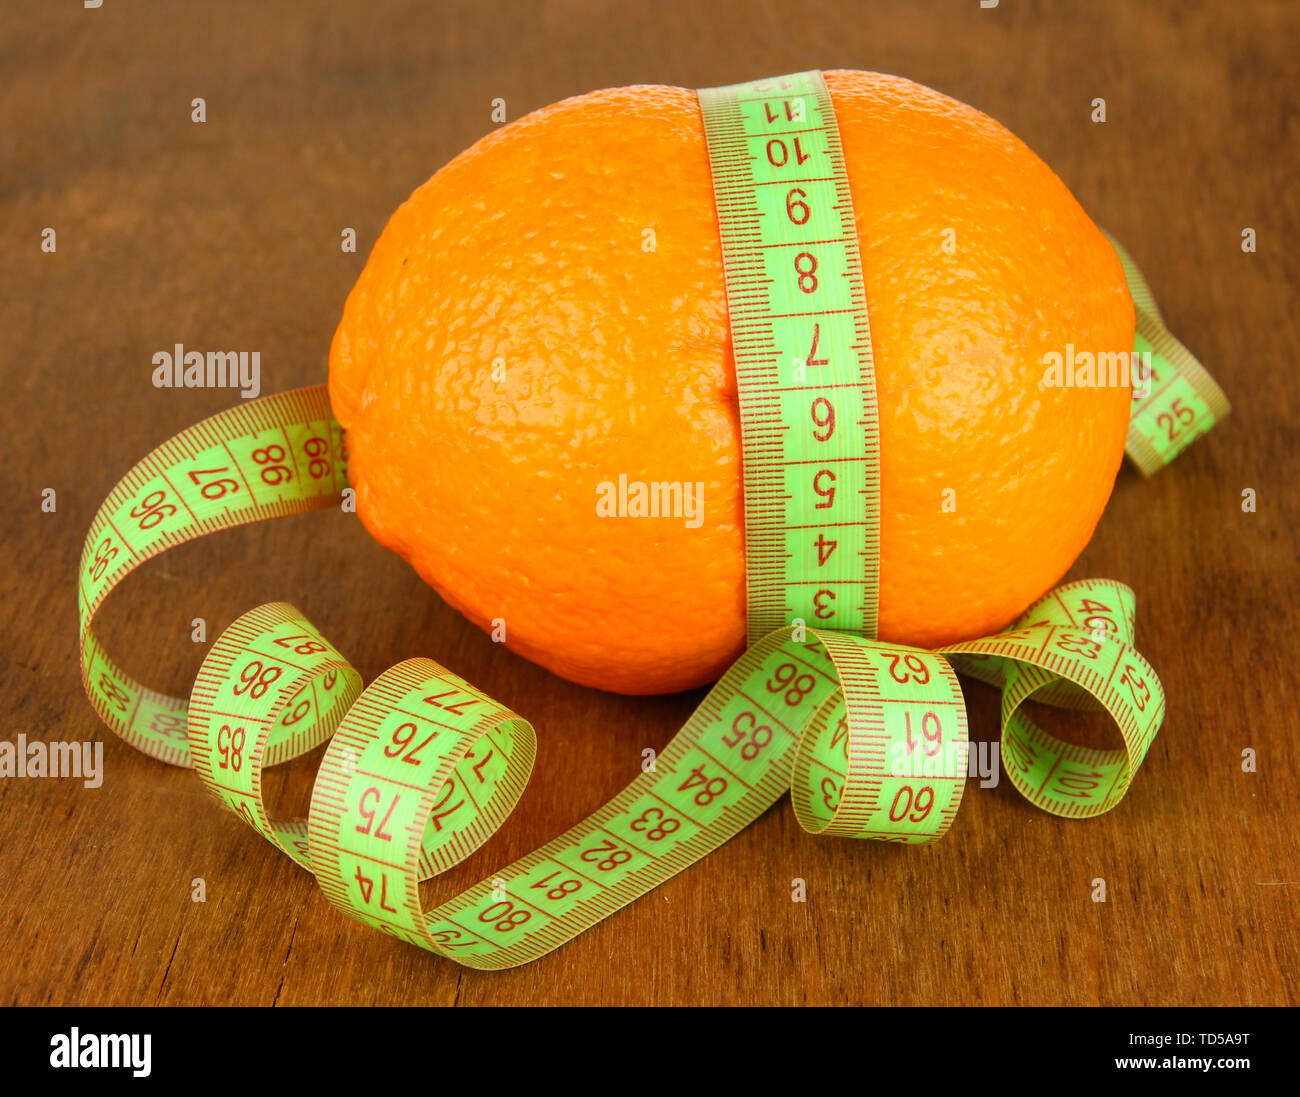 Orange with measuring tape, on wooden background - Stock Image